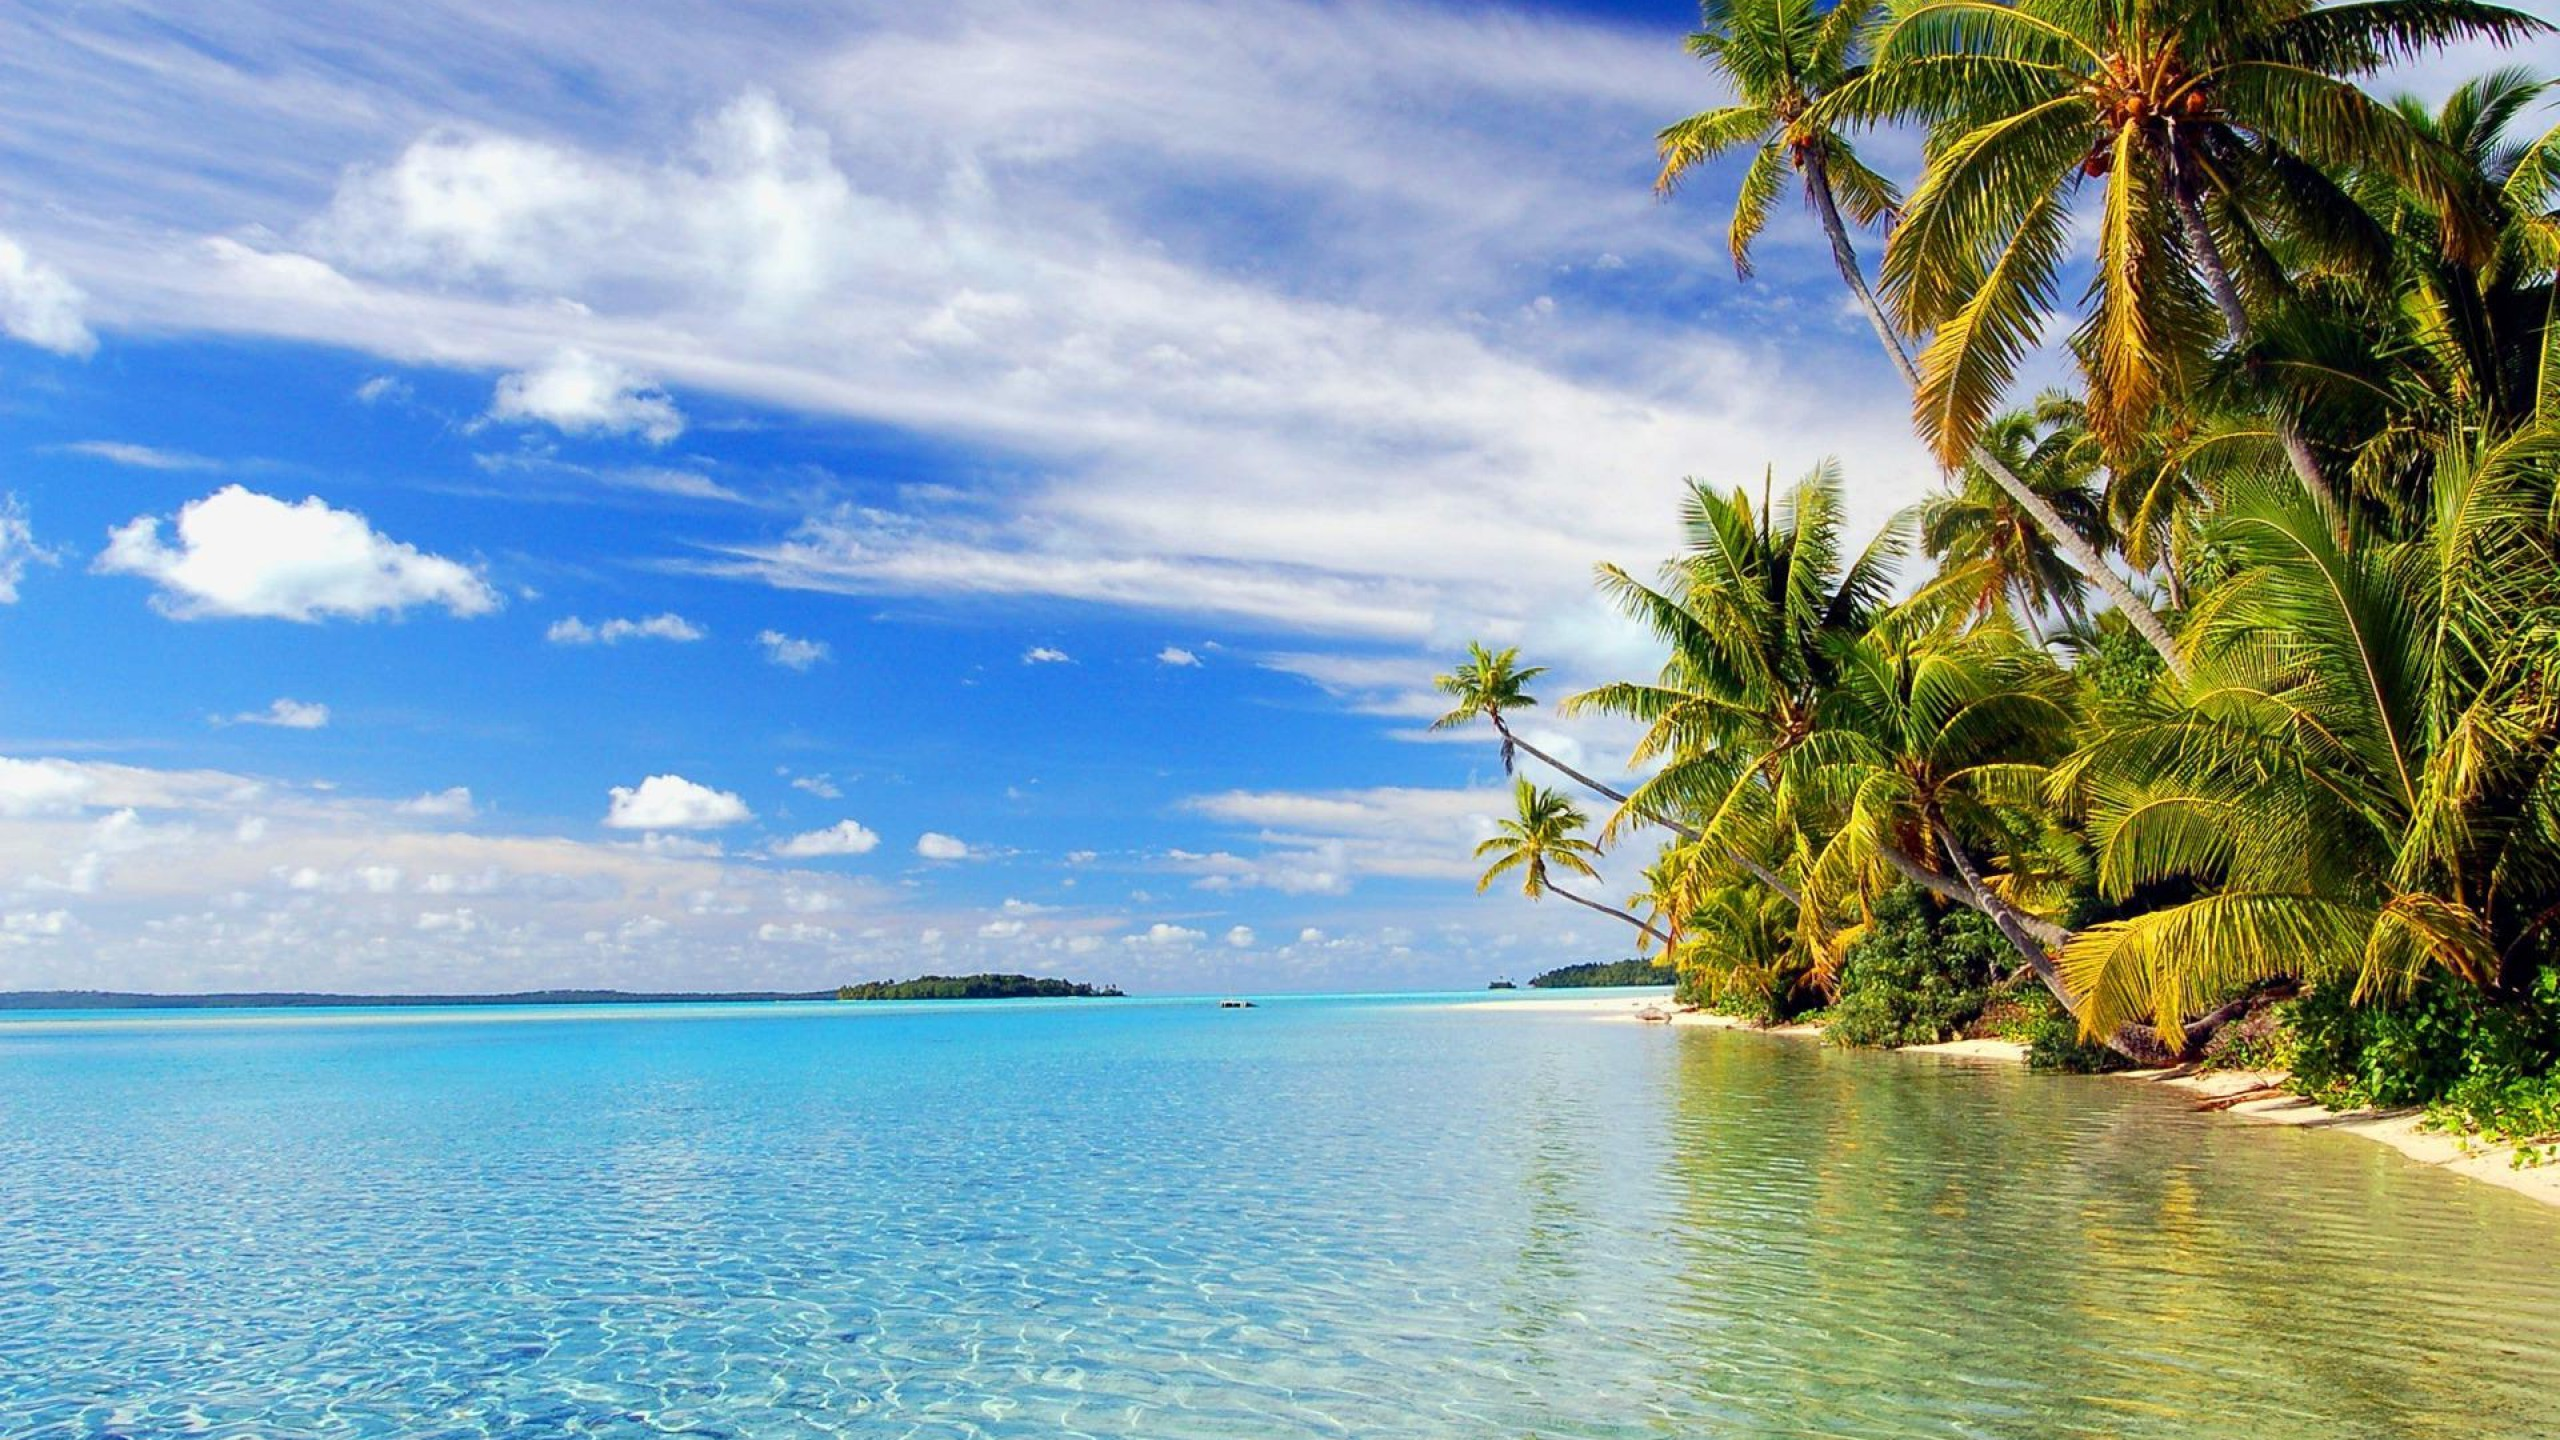 best beach wallpapers,body of water,natural landscape,nature,tropics,sky